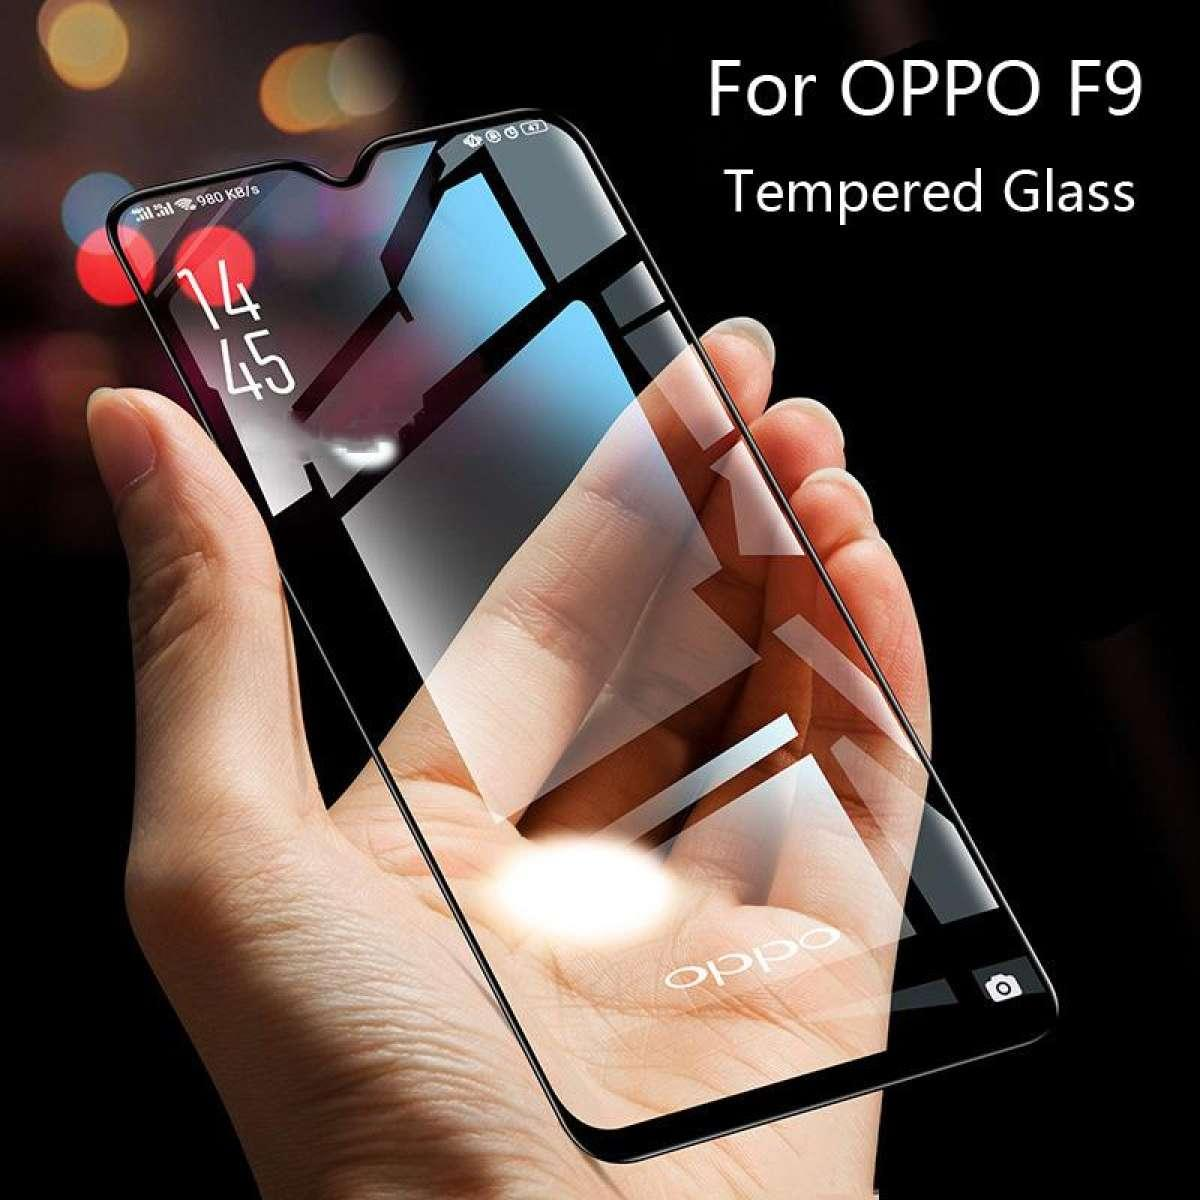 Screen Protector For Sale Guard Prices Brands Specs In Tempered Glass Iphone 8 Plus Clear 3d Full Cover Premium Pro 9h 25d Coverage Oppo F9